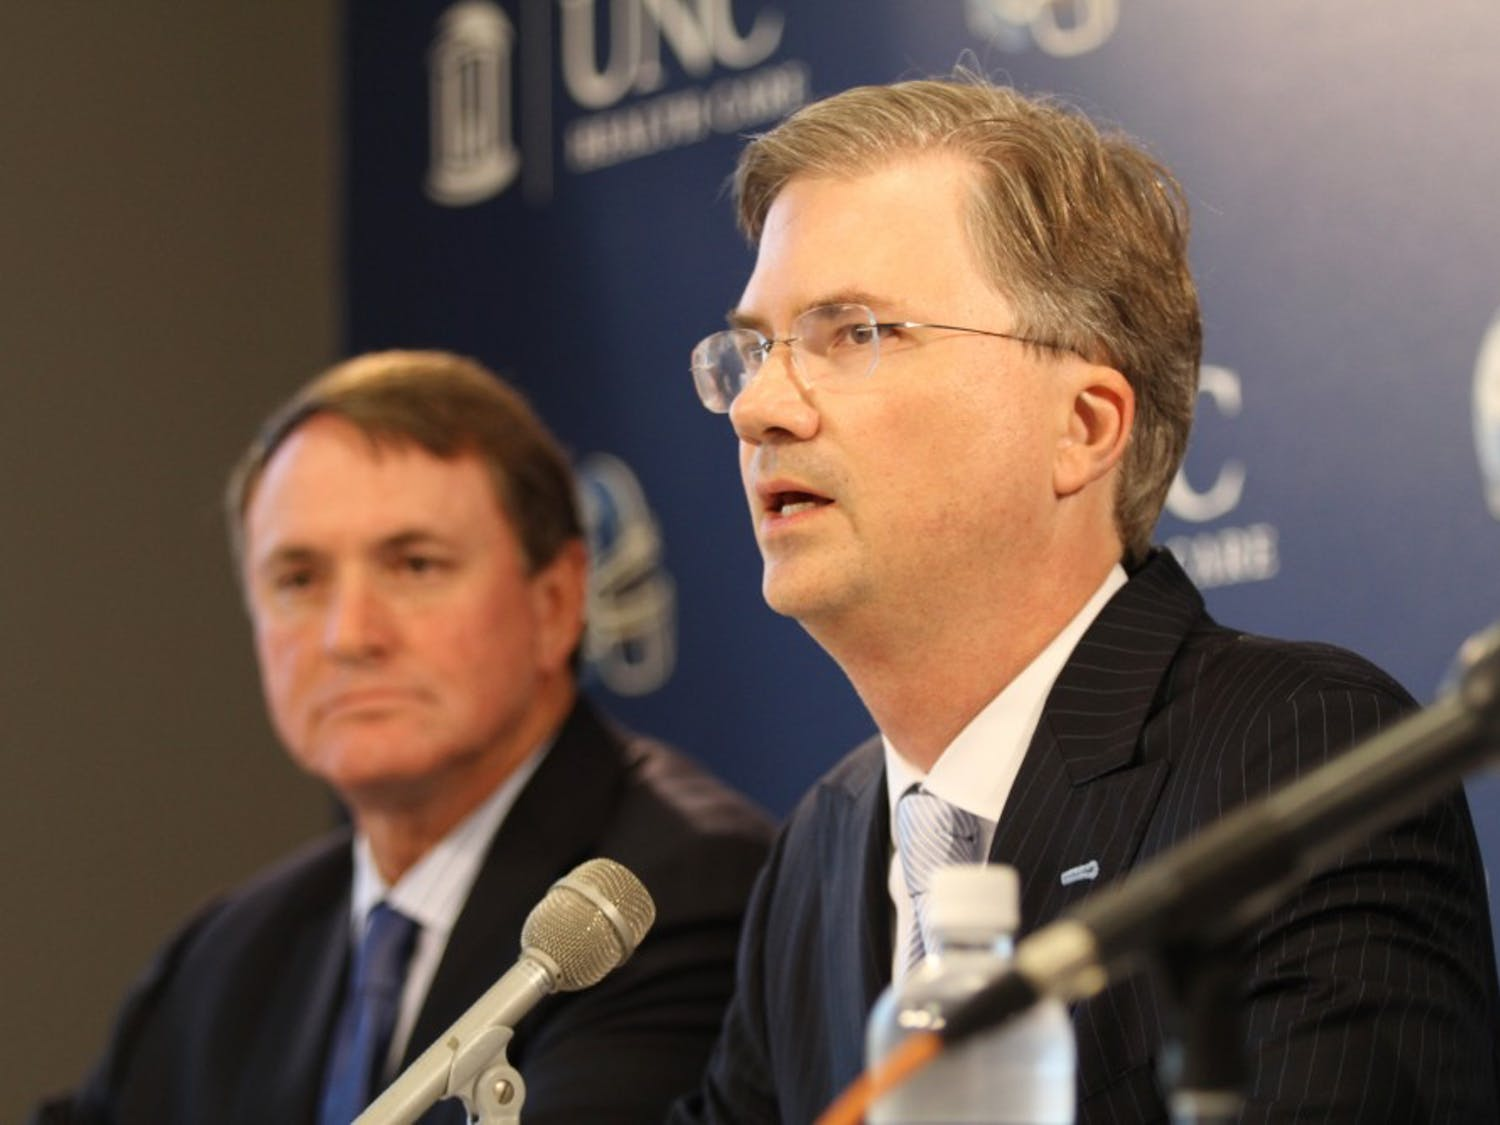 Butch Davis, Holden Thorp, Dick Baddour, and Steve Kirschner give a press conference on possible academic misconduct involving the football team.